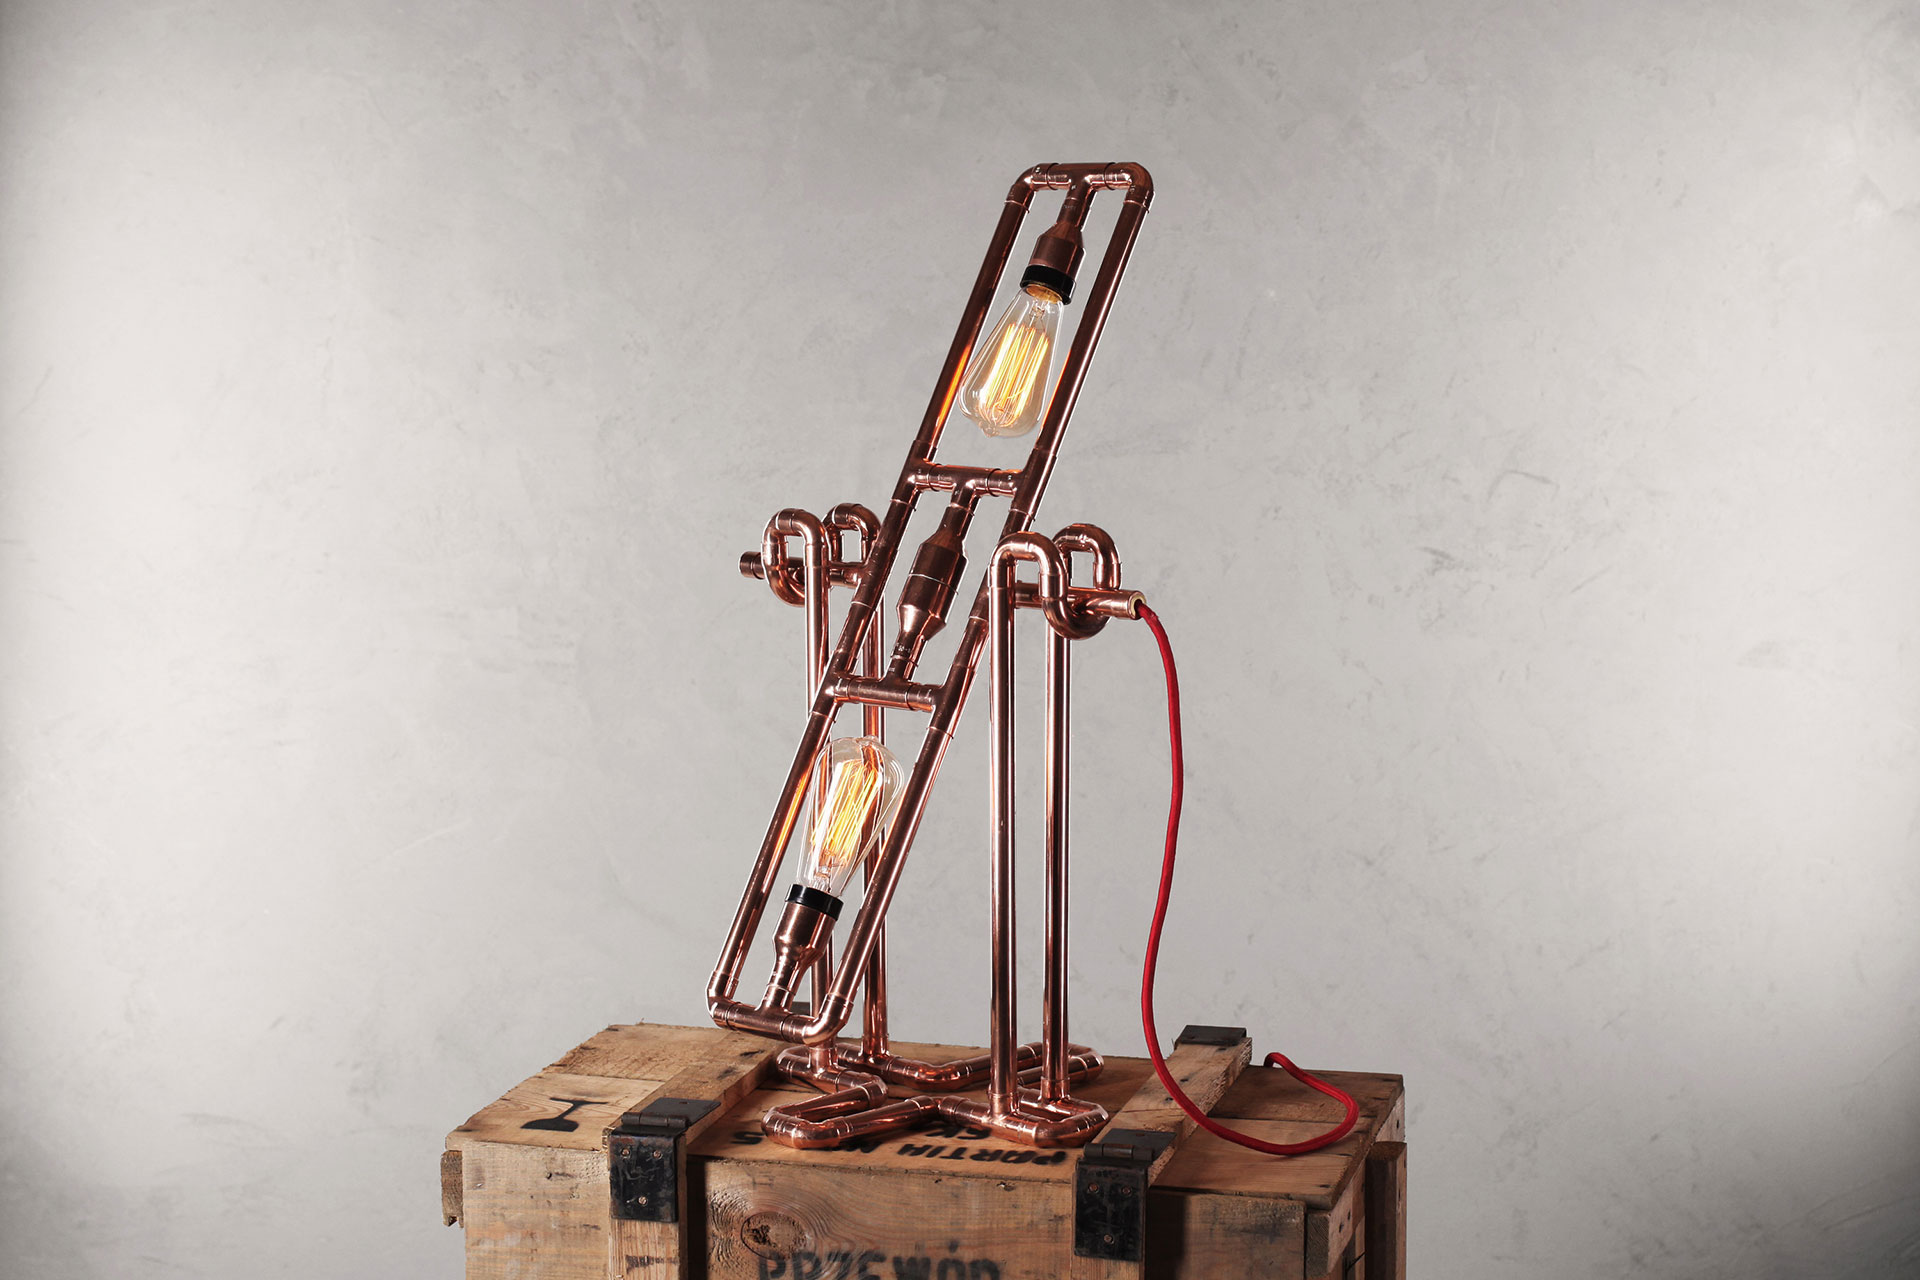 Steampunk table lamp made of copper pipes on a vintage army chest box